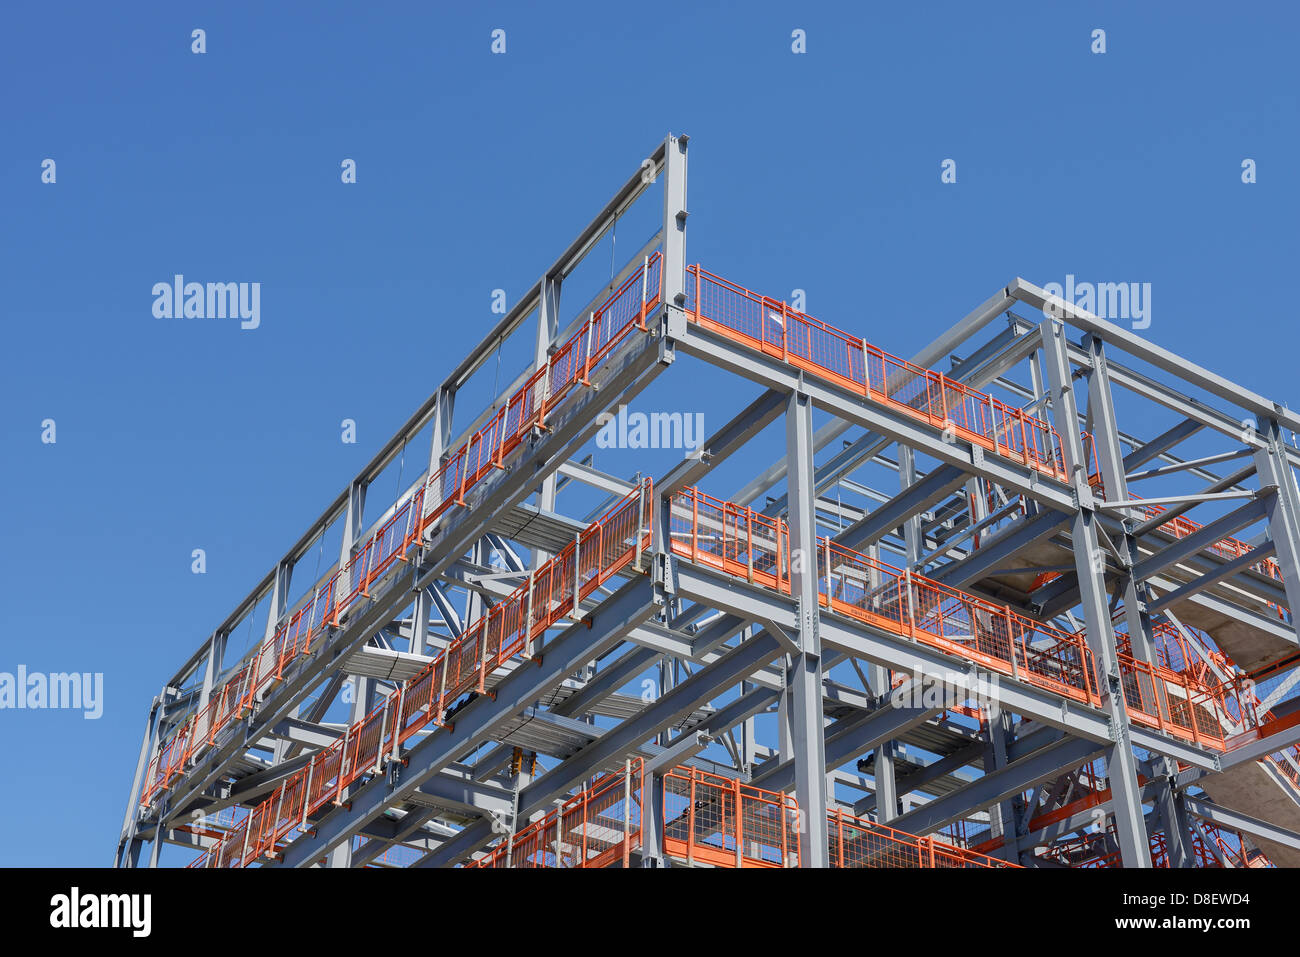 Construction site steel frame with safety rails - Stock Image